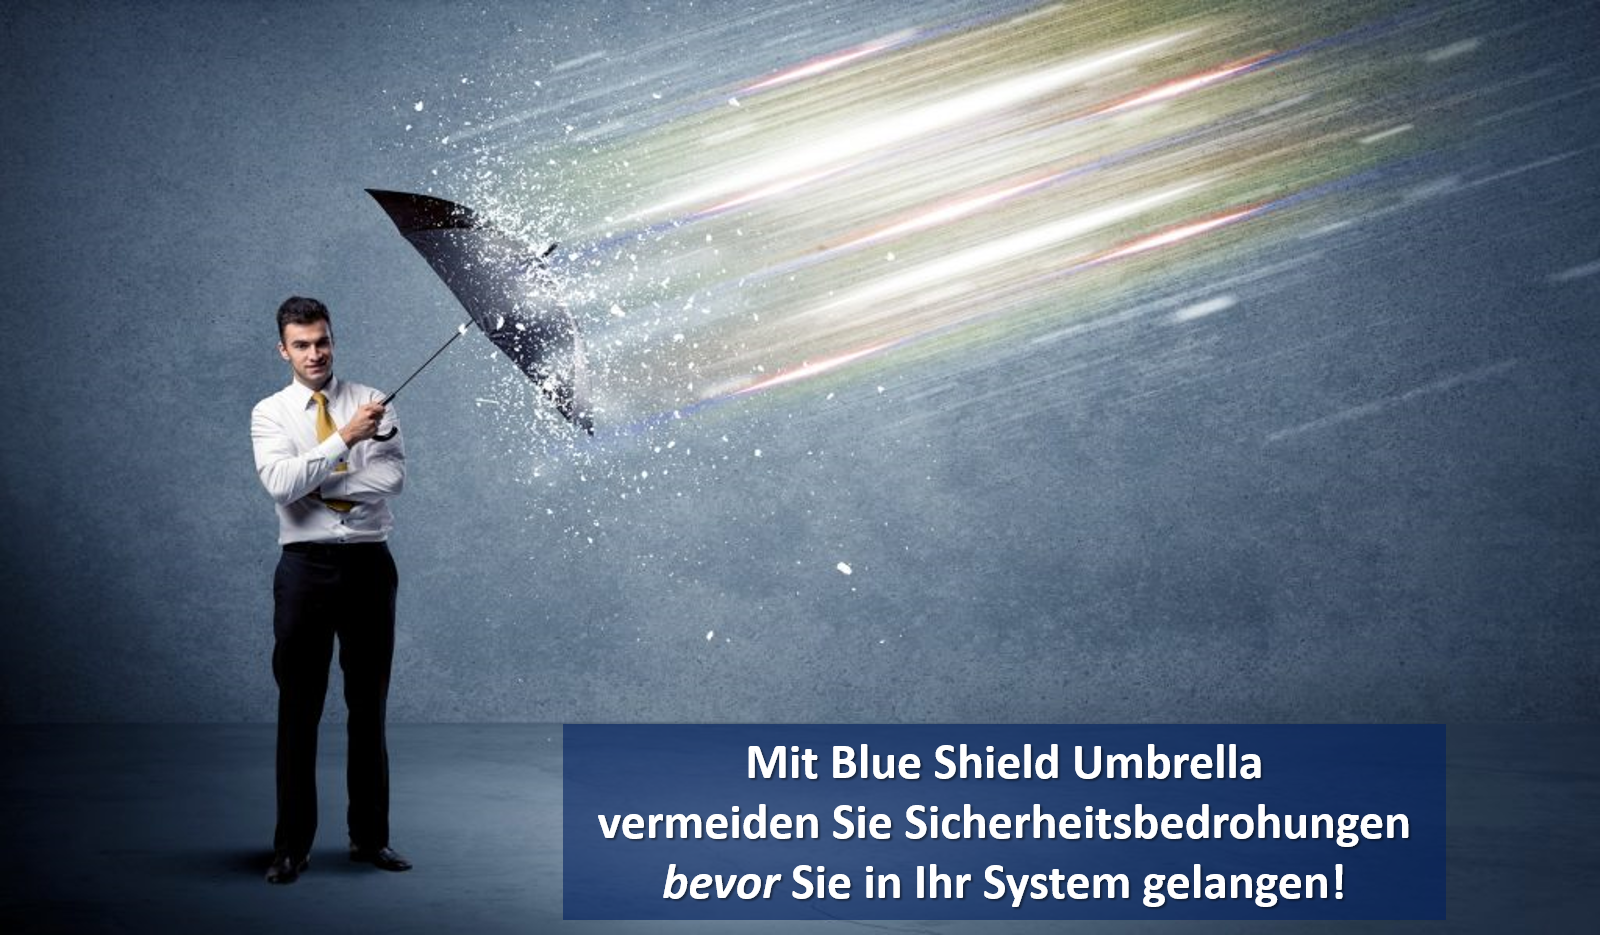 Blue Shield Umbrella